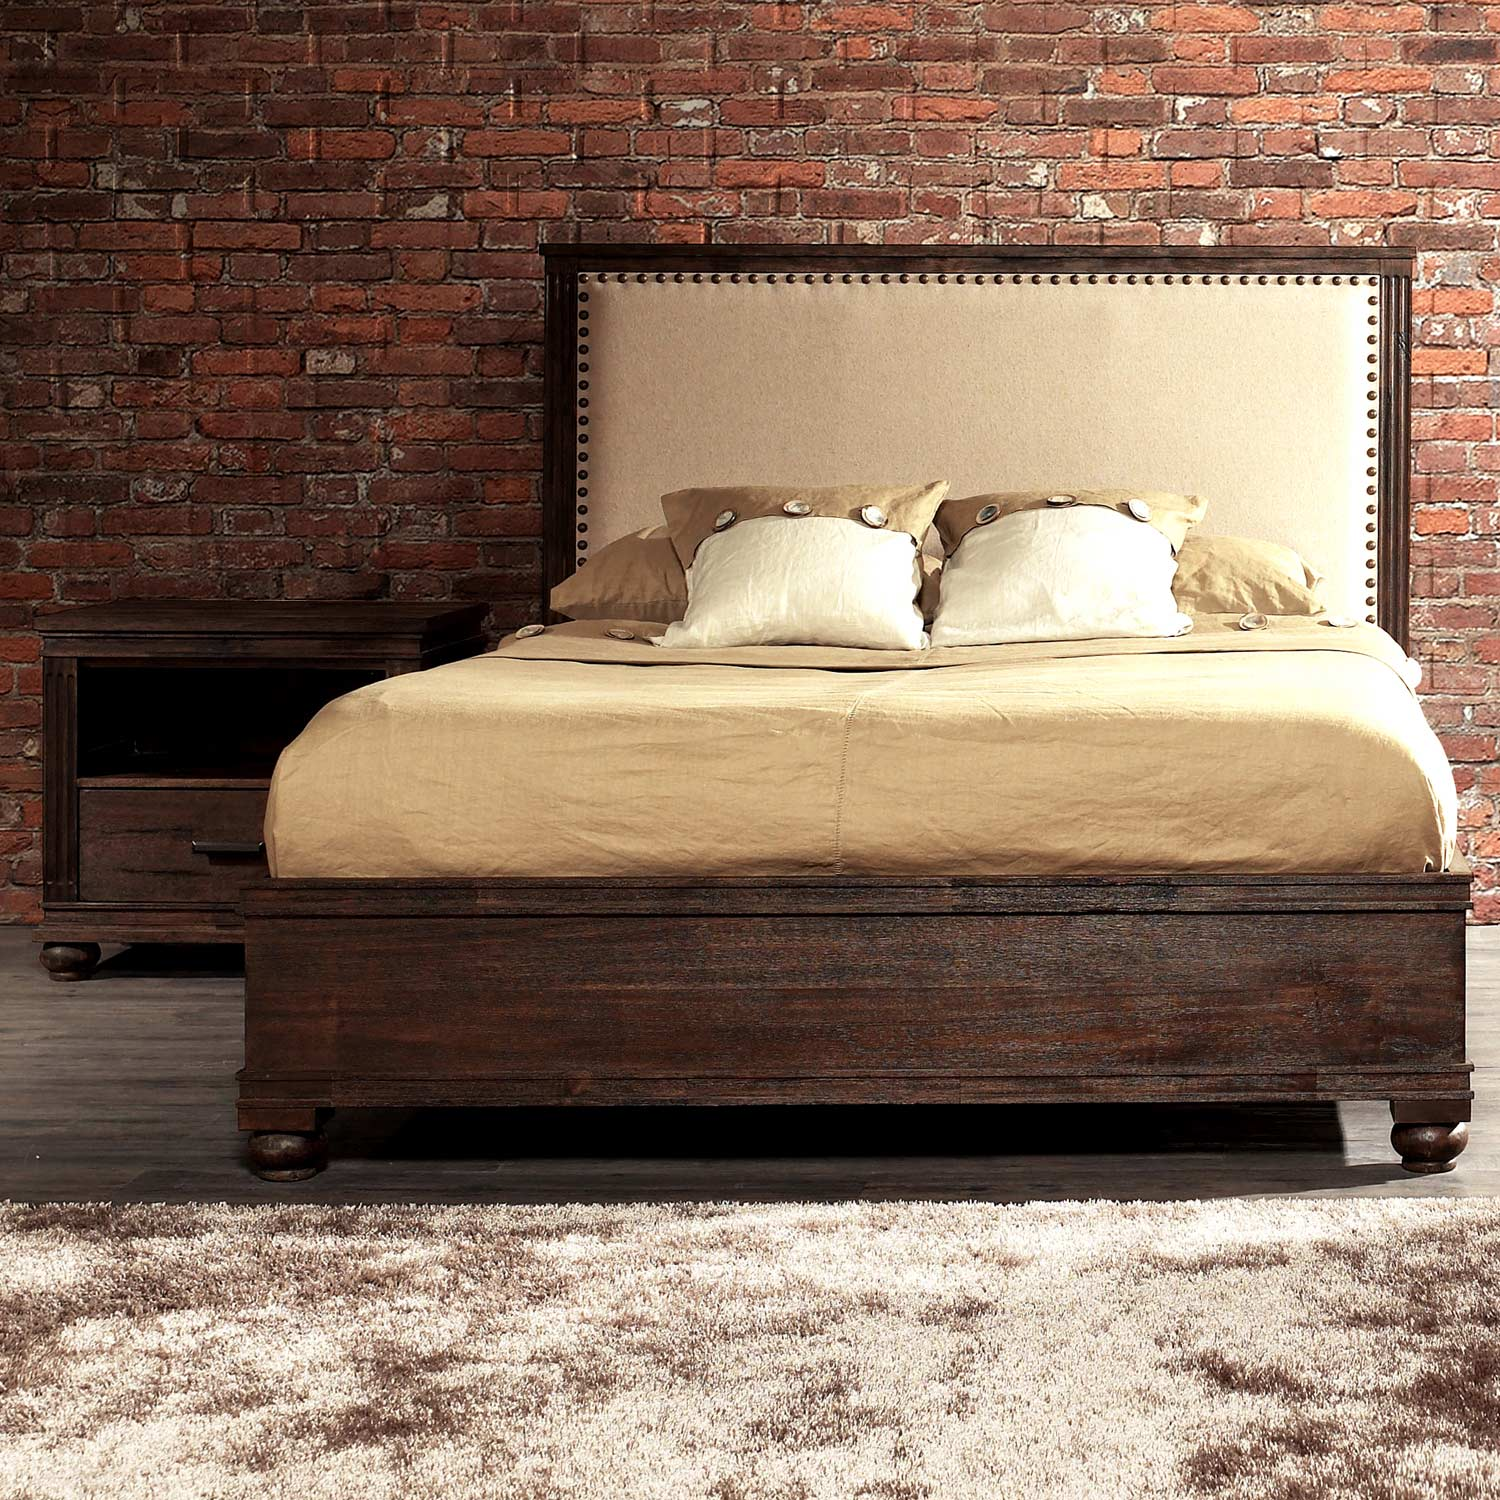 The City Bedroom Set - Linen Headboard, Bun Feet, Dark Brown